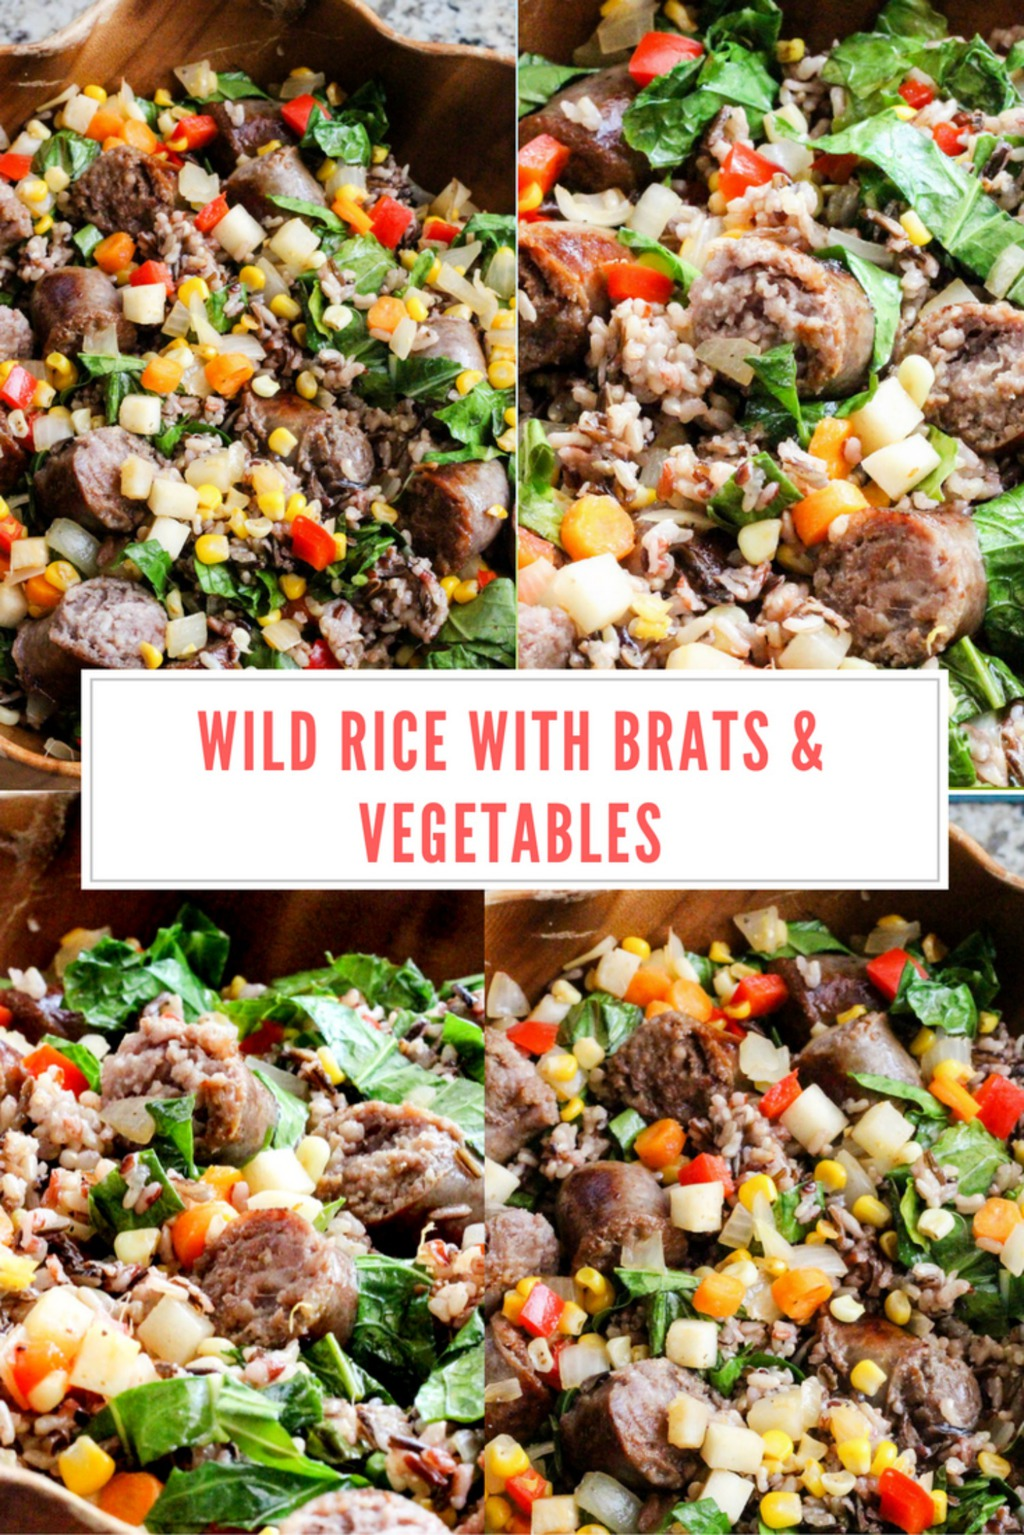 Wild Rice with Brats & Vegetables - This Worthey Life - Food